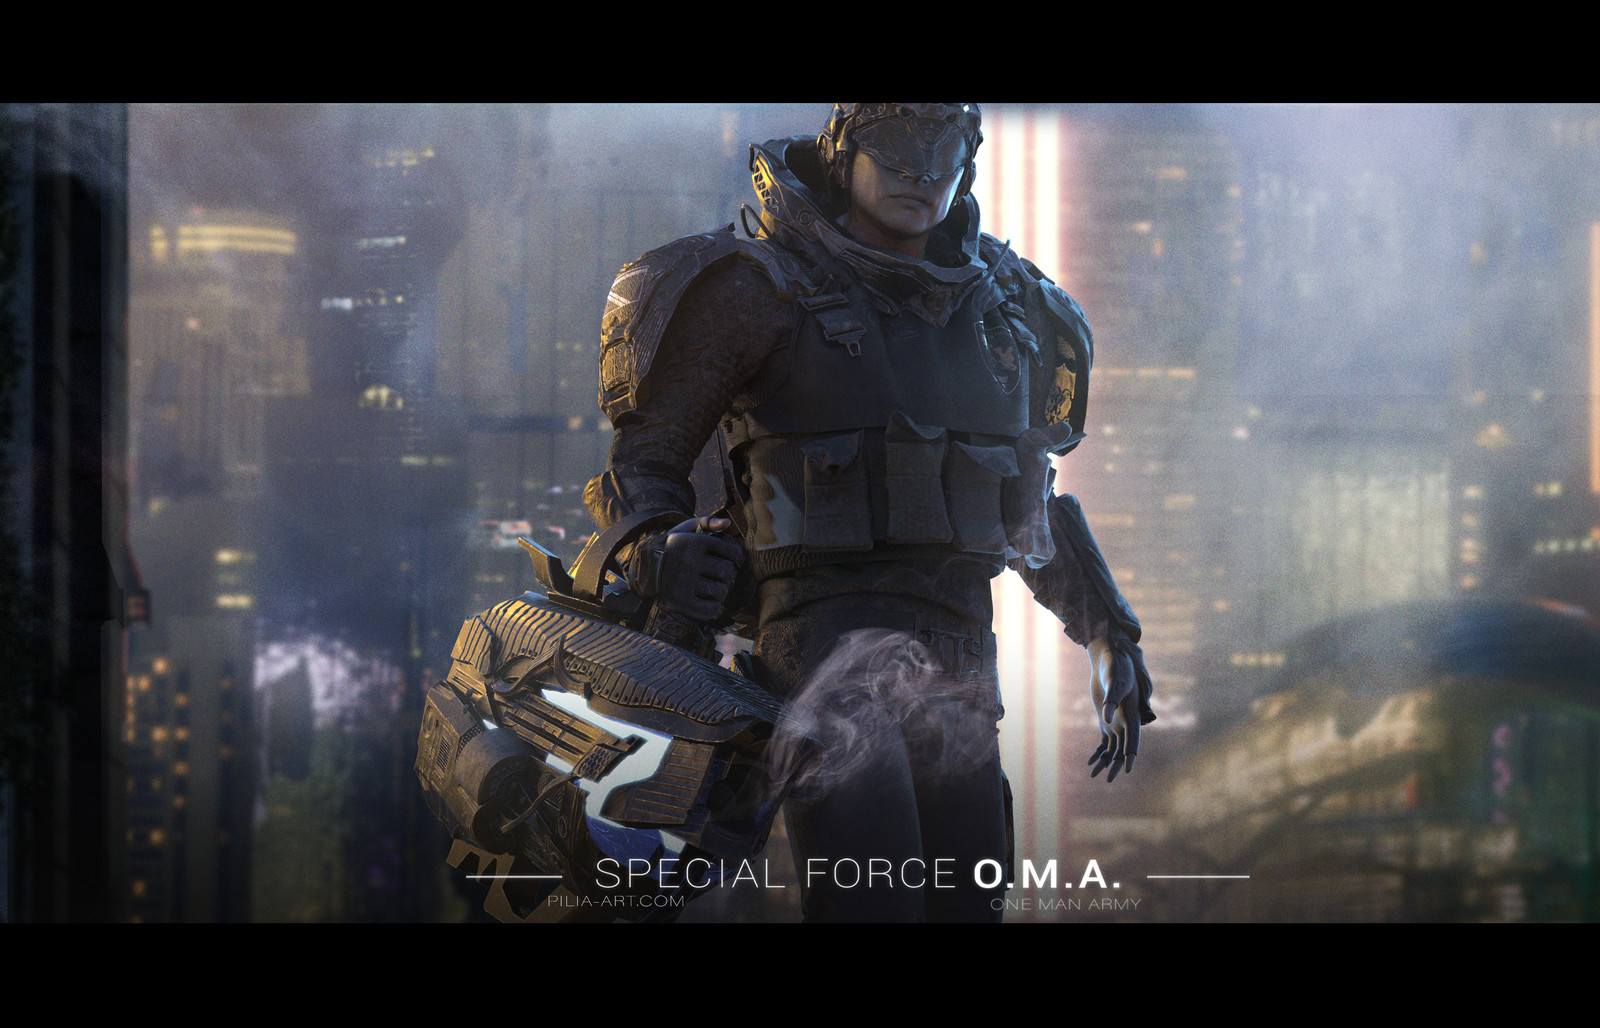 Special Force O.M.A. 02